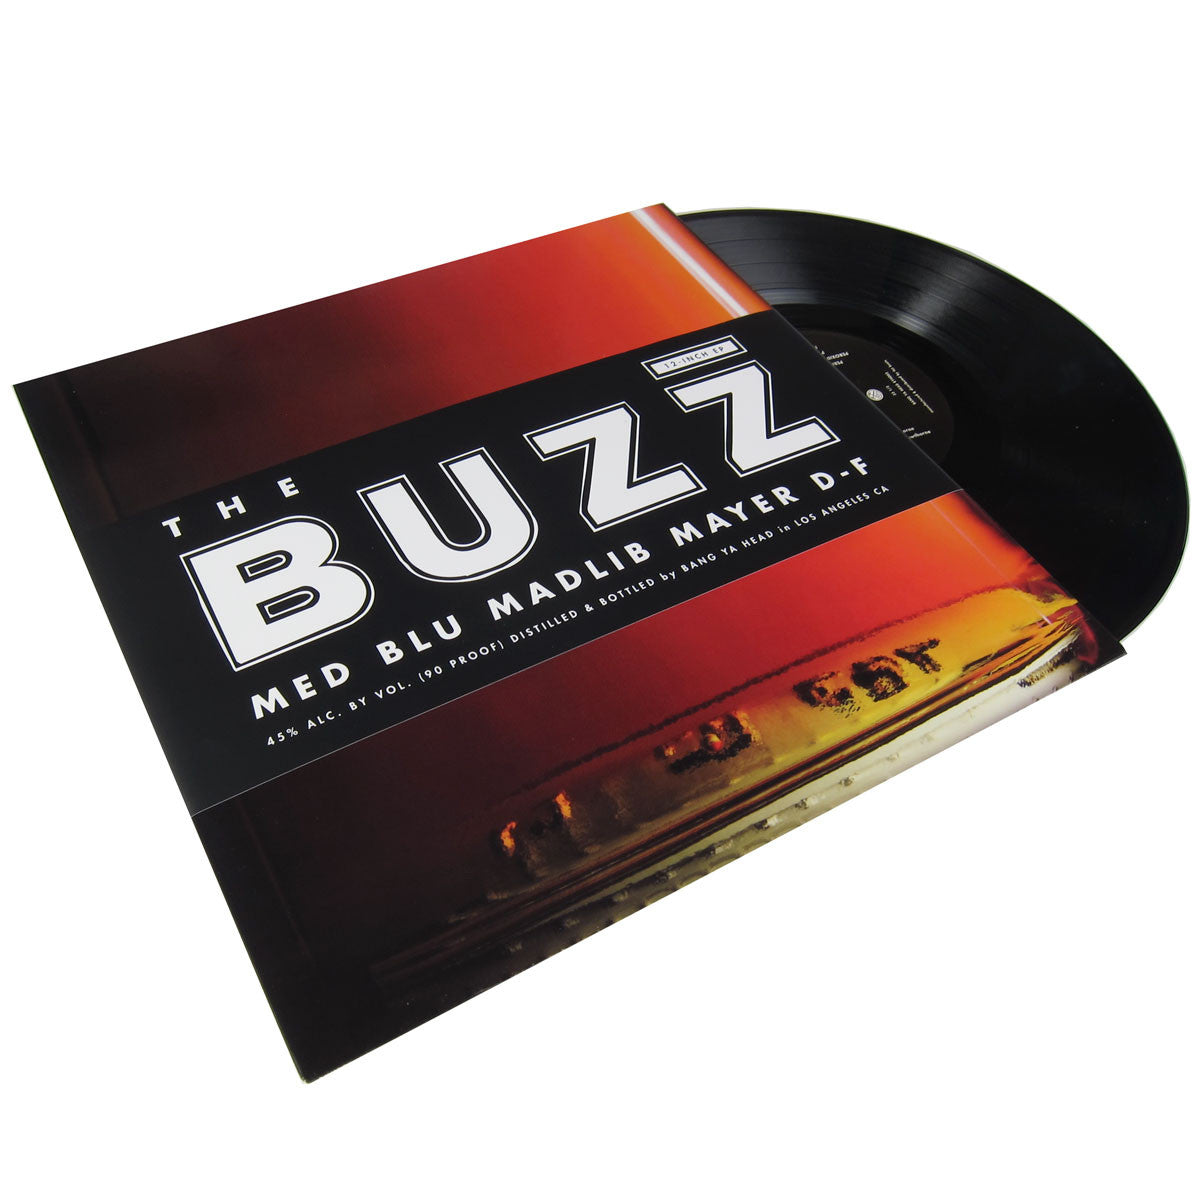 MED / Blu / Madlib: The Buzz EP (feat Mayer Hawthorne & Dam-Funk) 12""